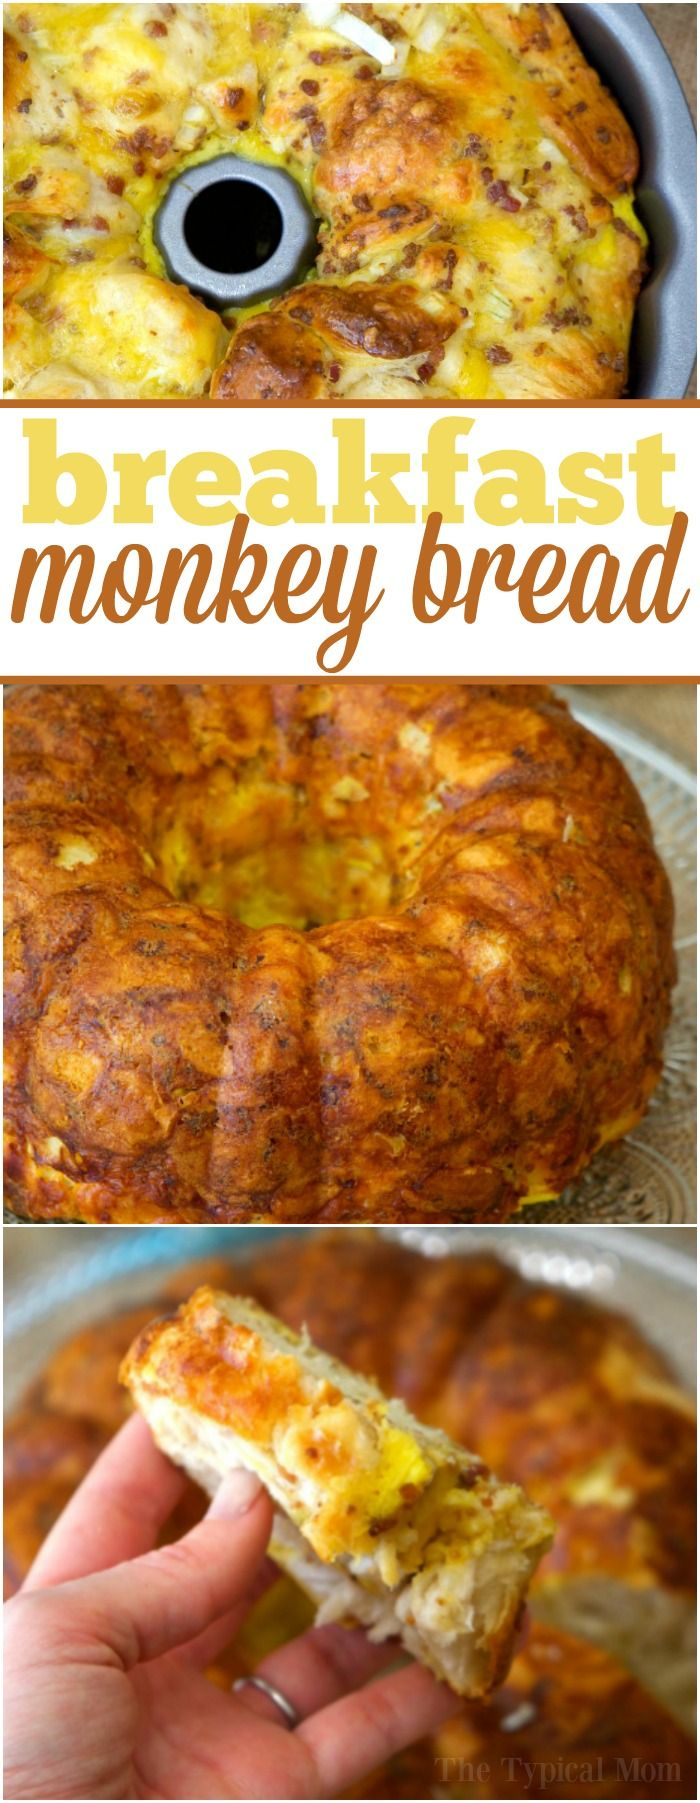 Bacon egg and cheese breakfast bundt cake is amazing and so easy!! You've got to make this at home, it is savory and perfect for breakfast or brunch. via @thetypicalmom